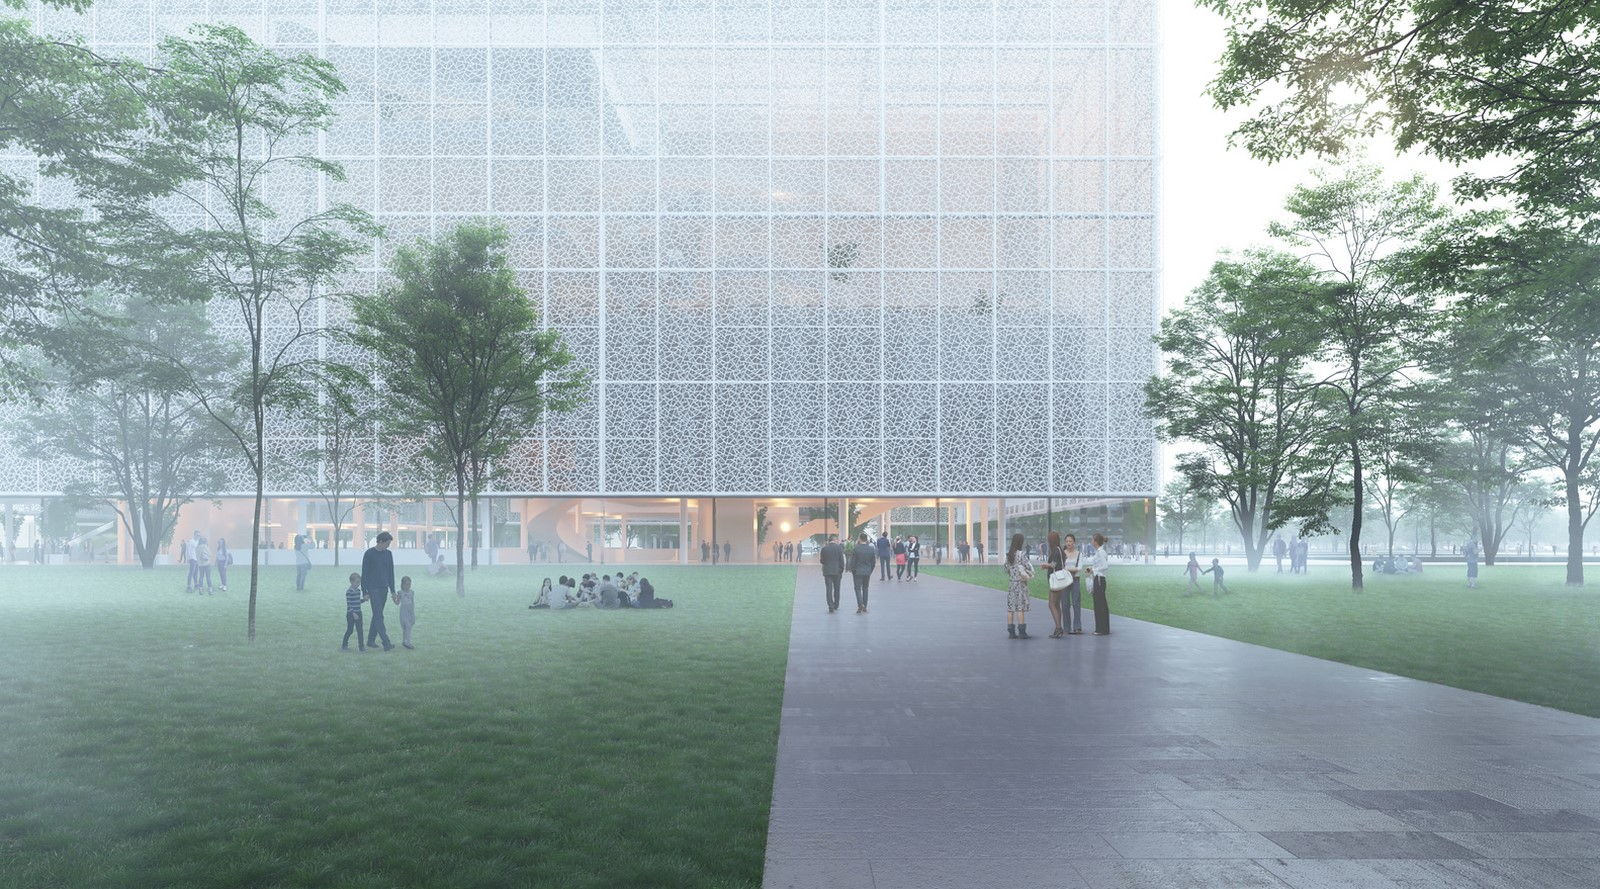 Shenzhen exhibition complex with transparent facade designed by Sou Fujimoto - Sheet2